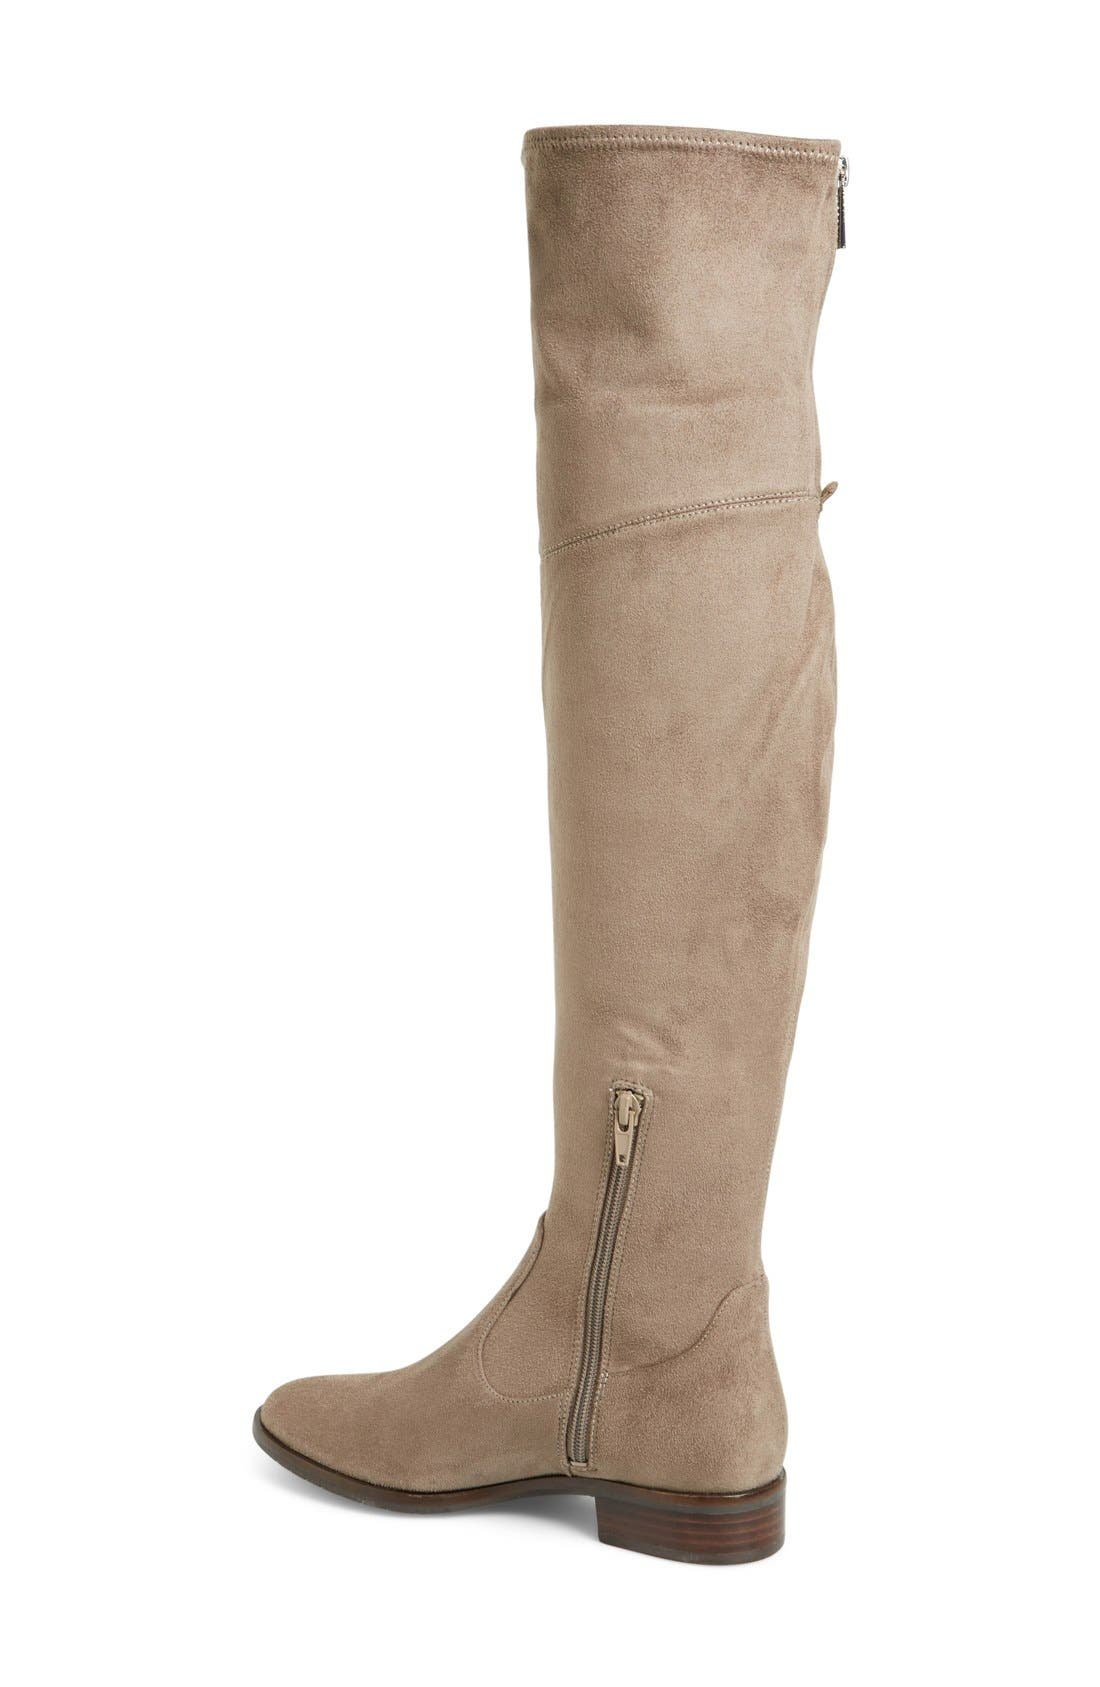 'Livi' Faux Suede Over the Knee Boot,                             Alternate thumbnail 4, color,                             250